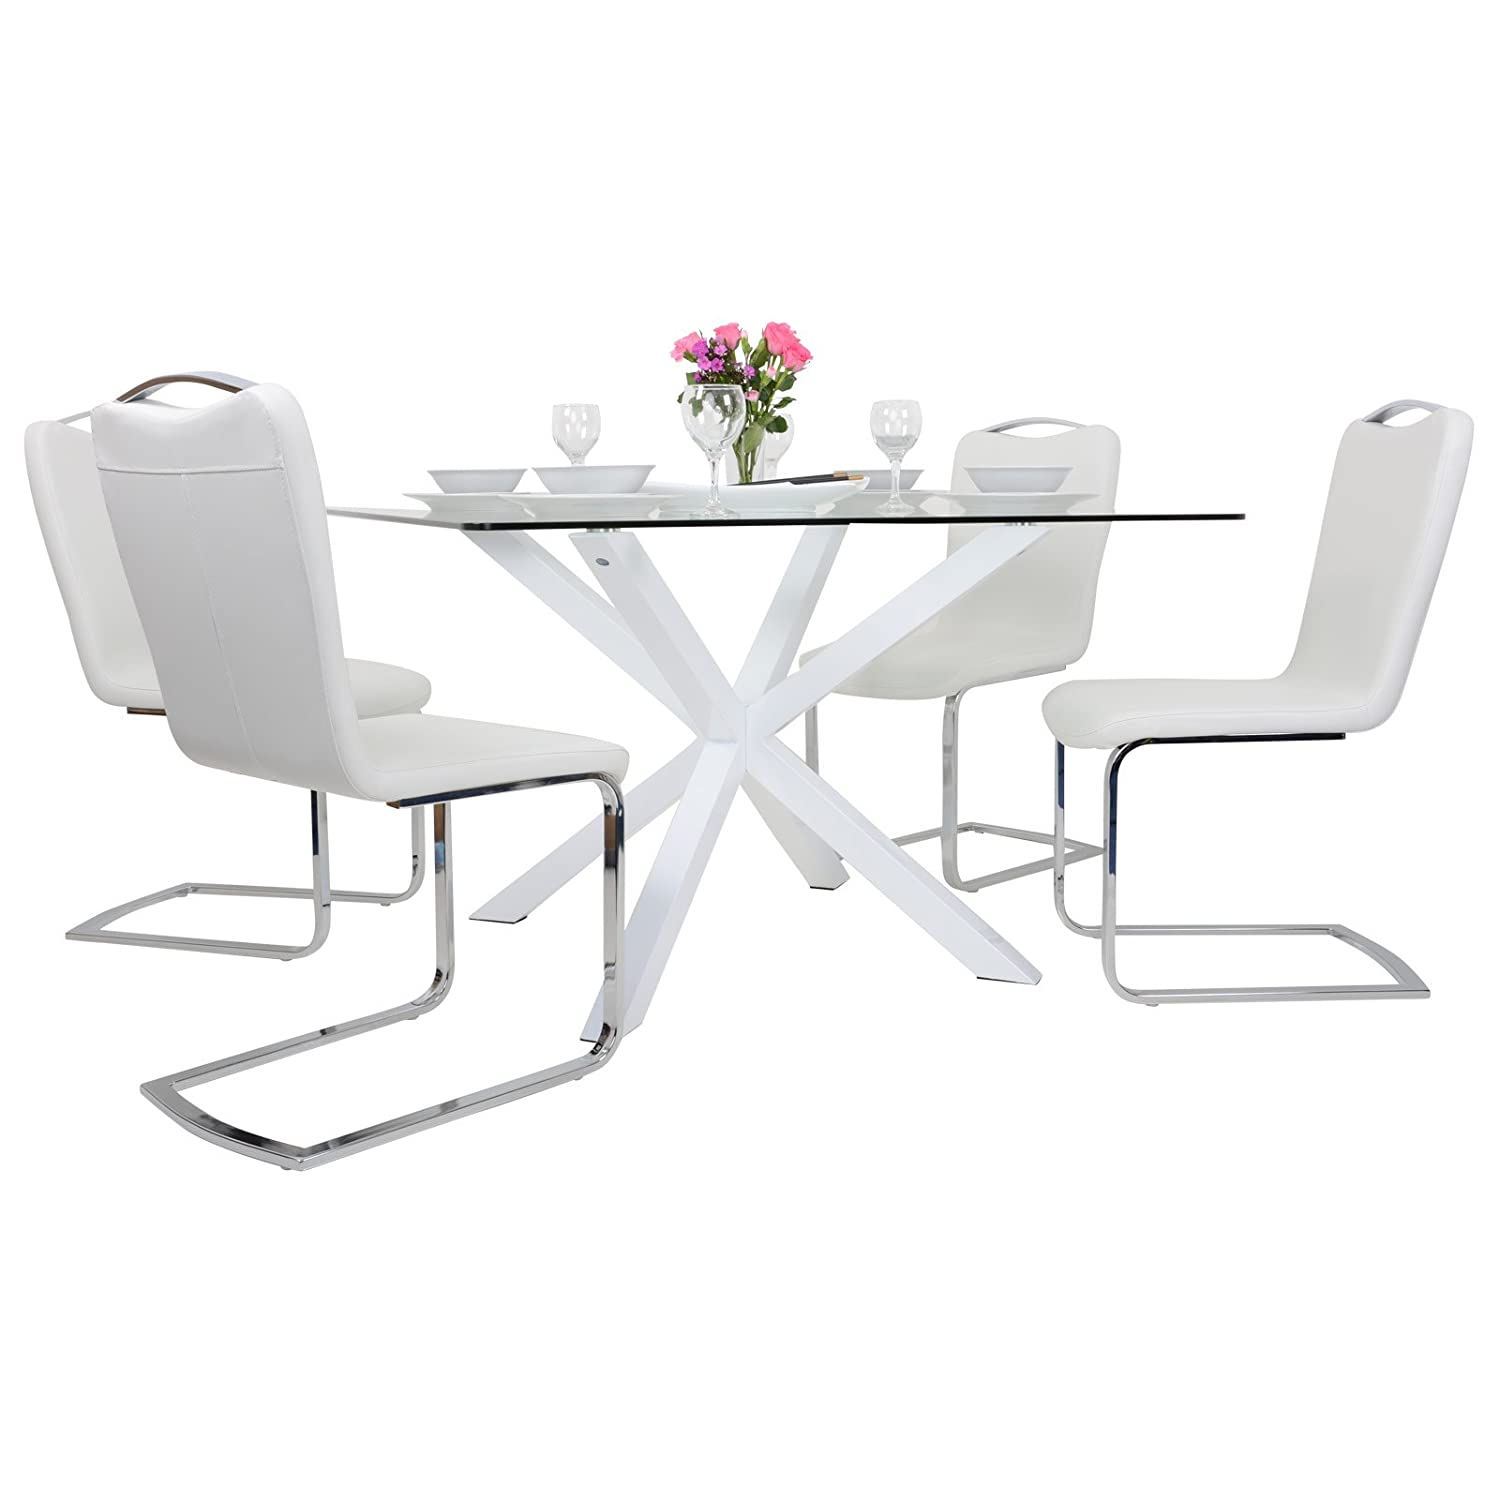 square glass dining table. Modern Square Clear Glass Top Dining Table Set With 4 White Faux Leather Chairs: Amazon.co.uk: Kitchen \u0026 Home